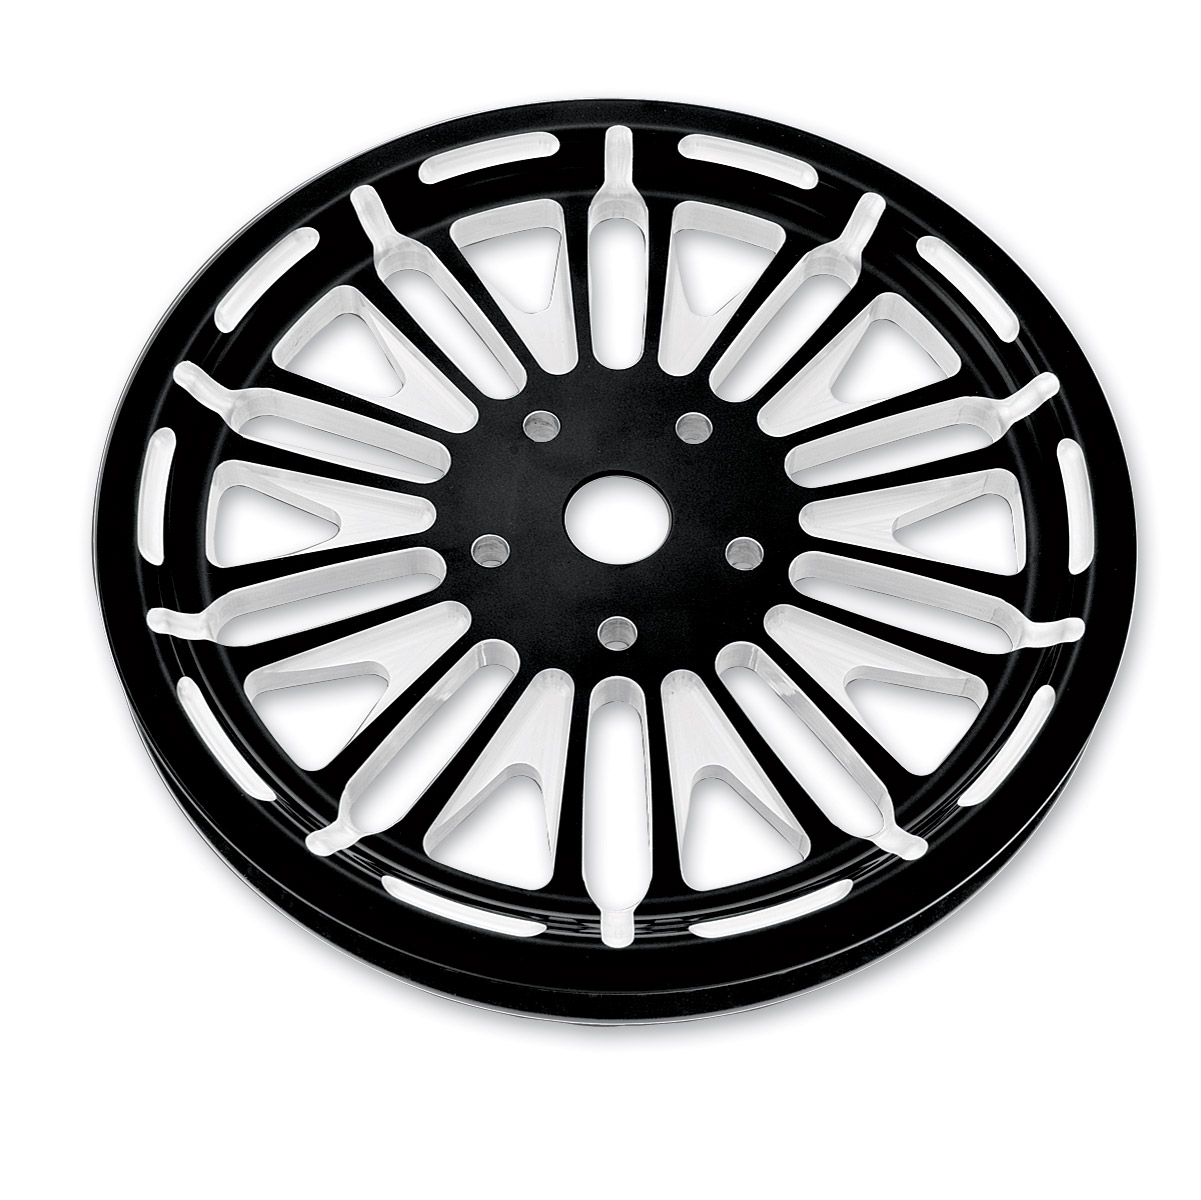 Roland Sands Design Boss Contrast Cut 65T Forged Aluminum Pulley